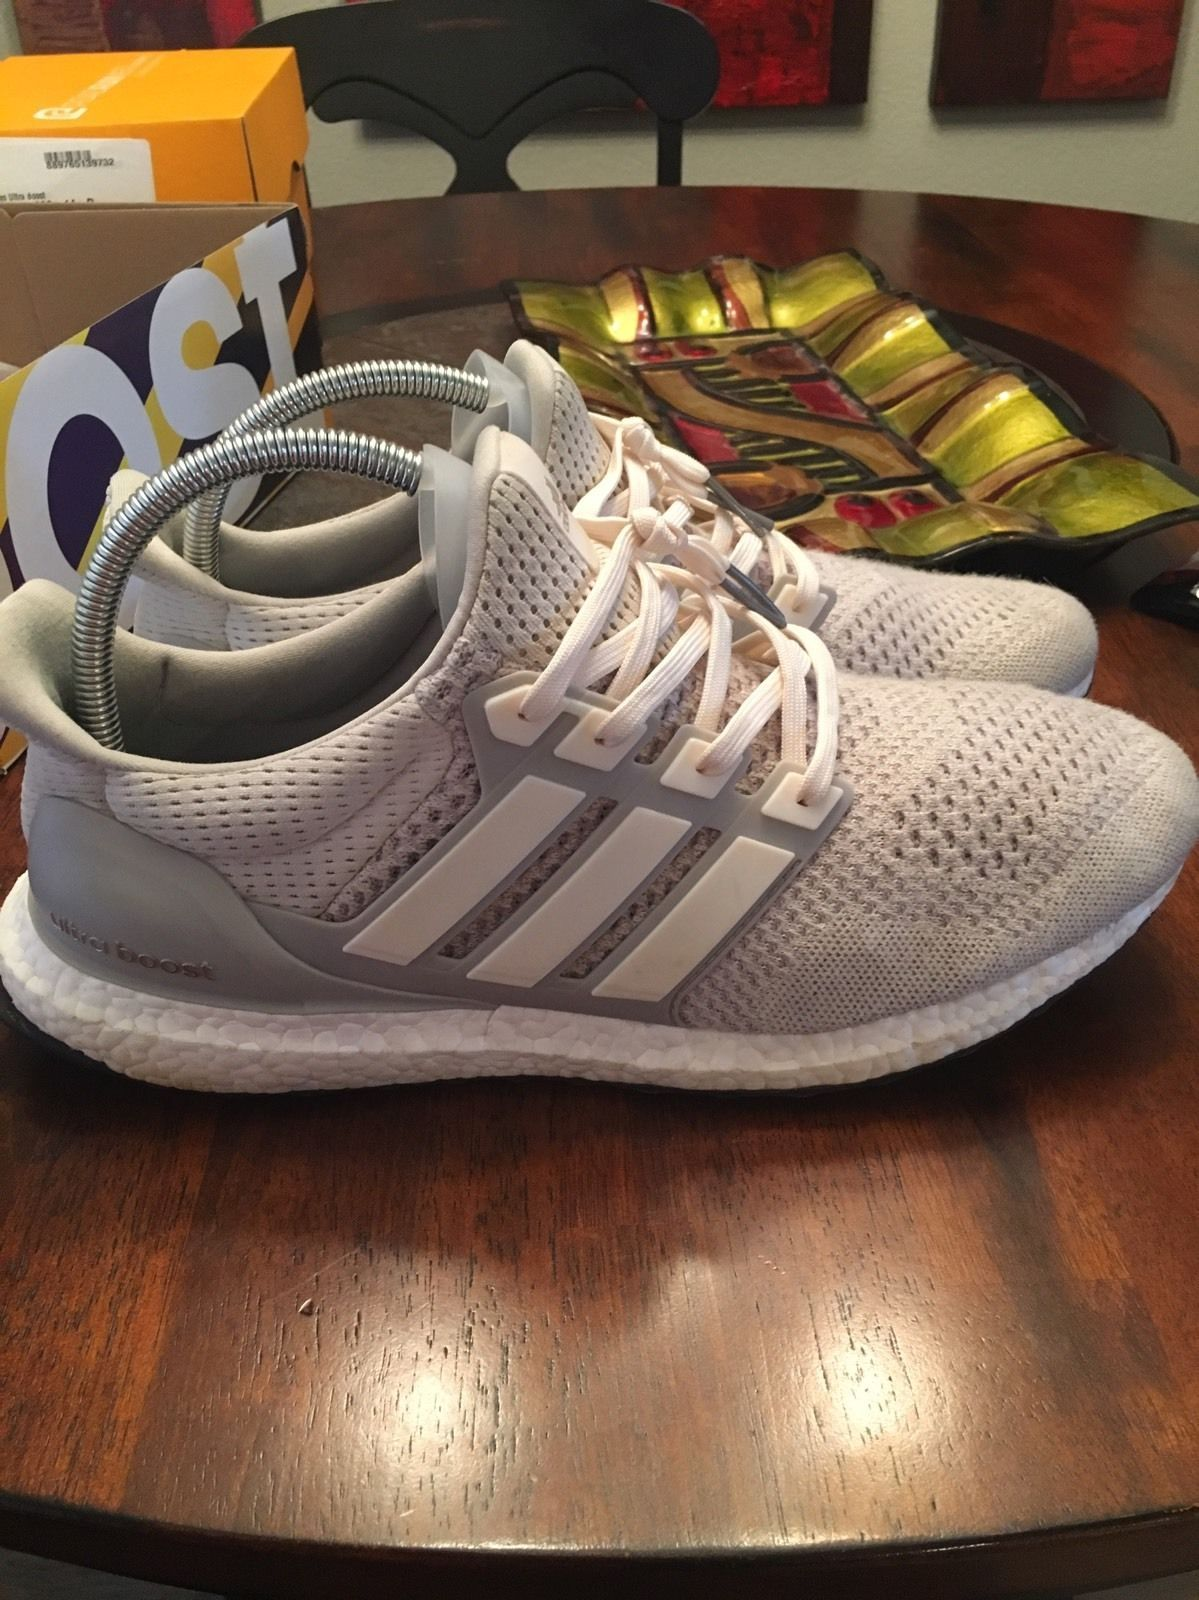 [LC] Could someone please LC these Cream UB 1.0s